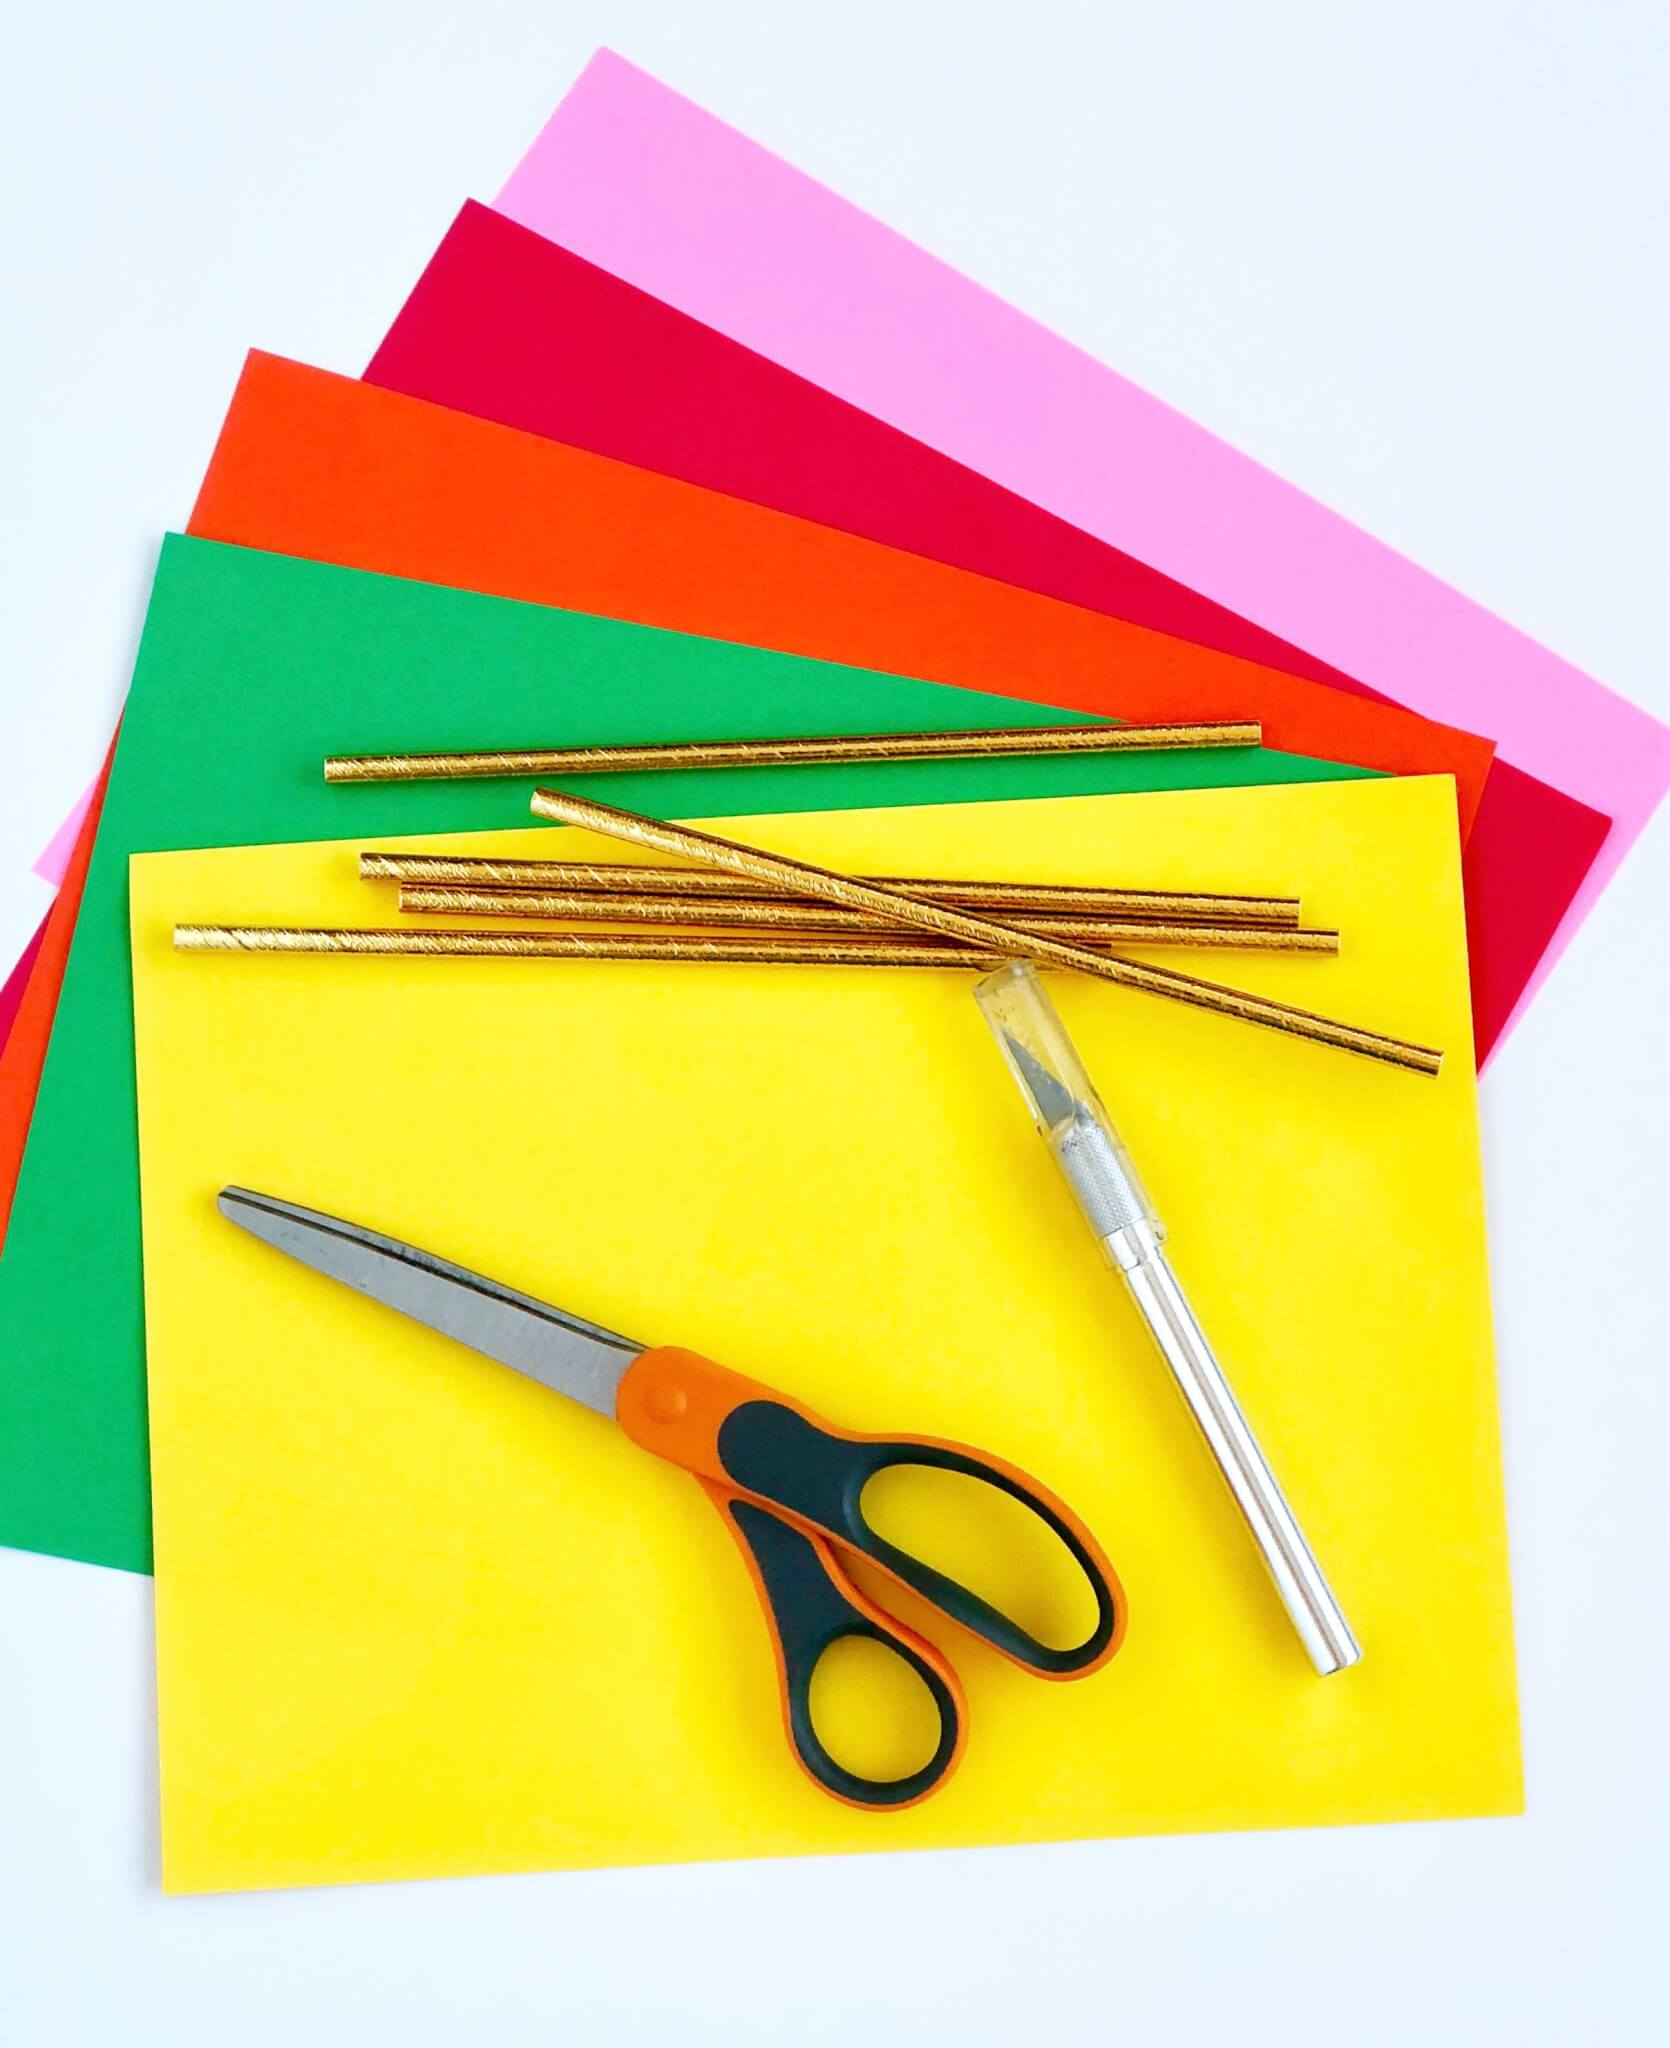 Craft supplies list with scissors and X-acto knife